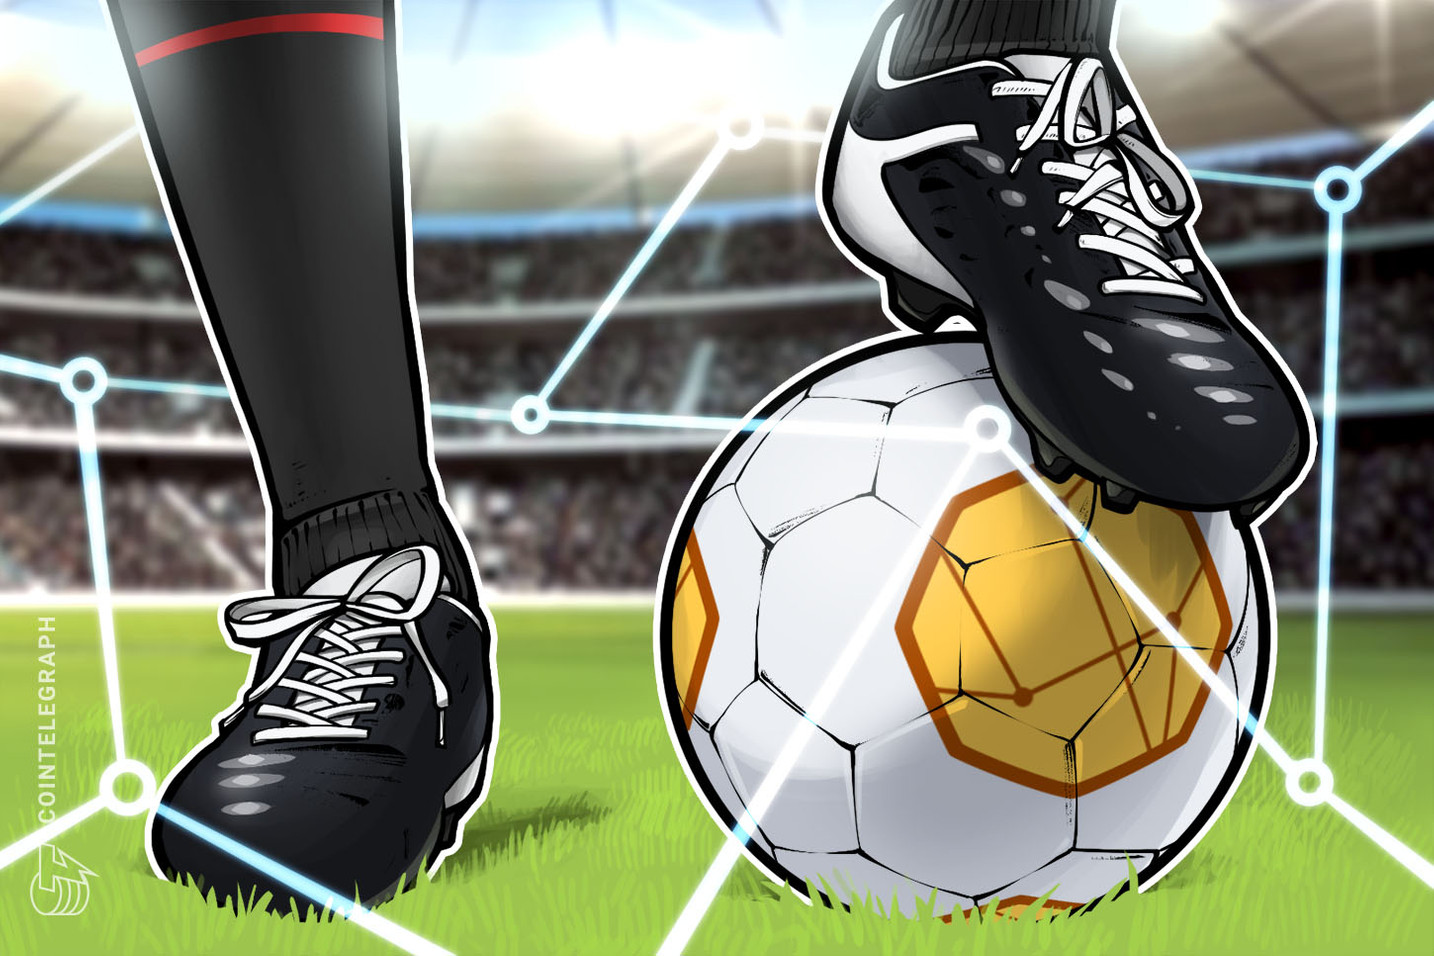 Chainlink Partners With Chiliz to Automatically Mint Tokens for Teams Like FC Barcelona